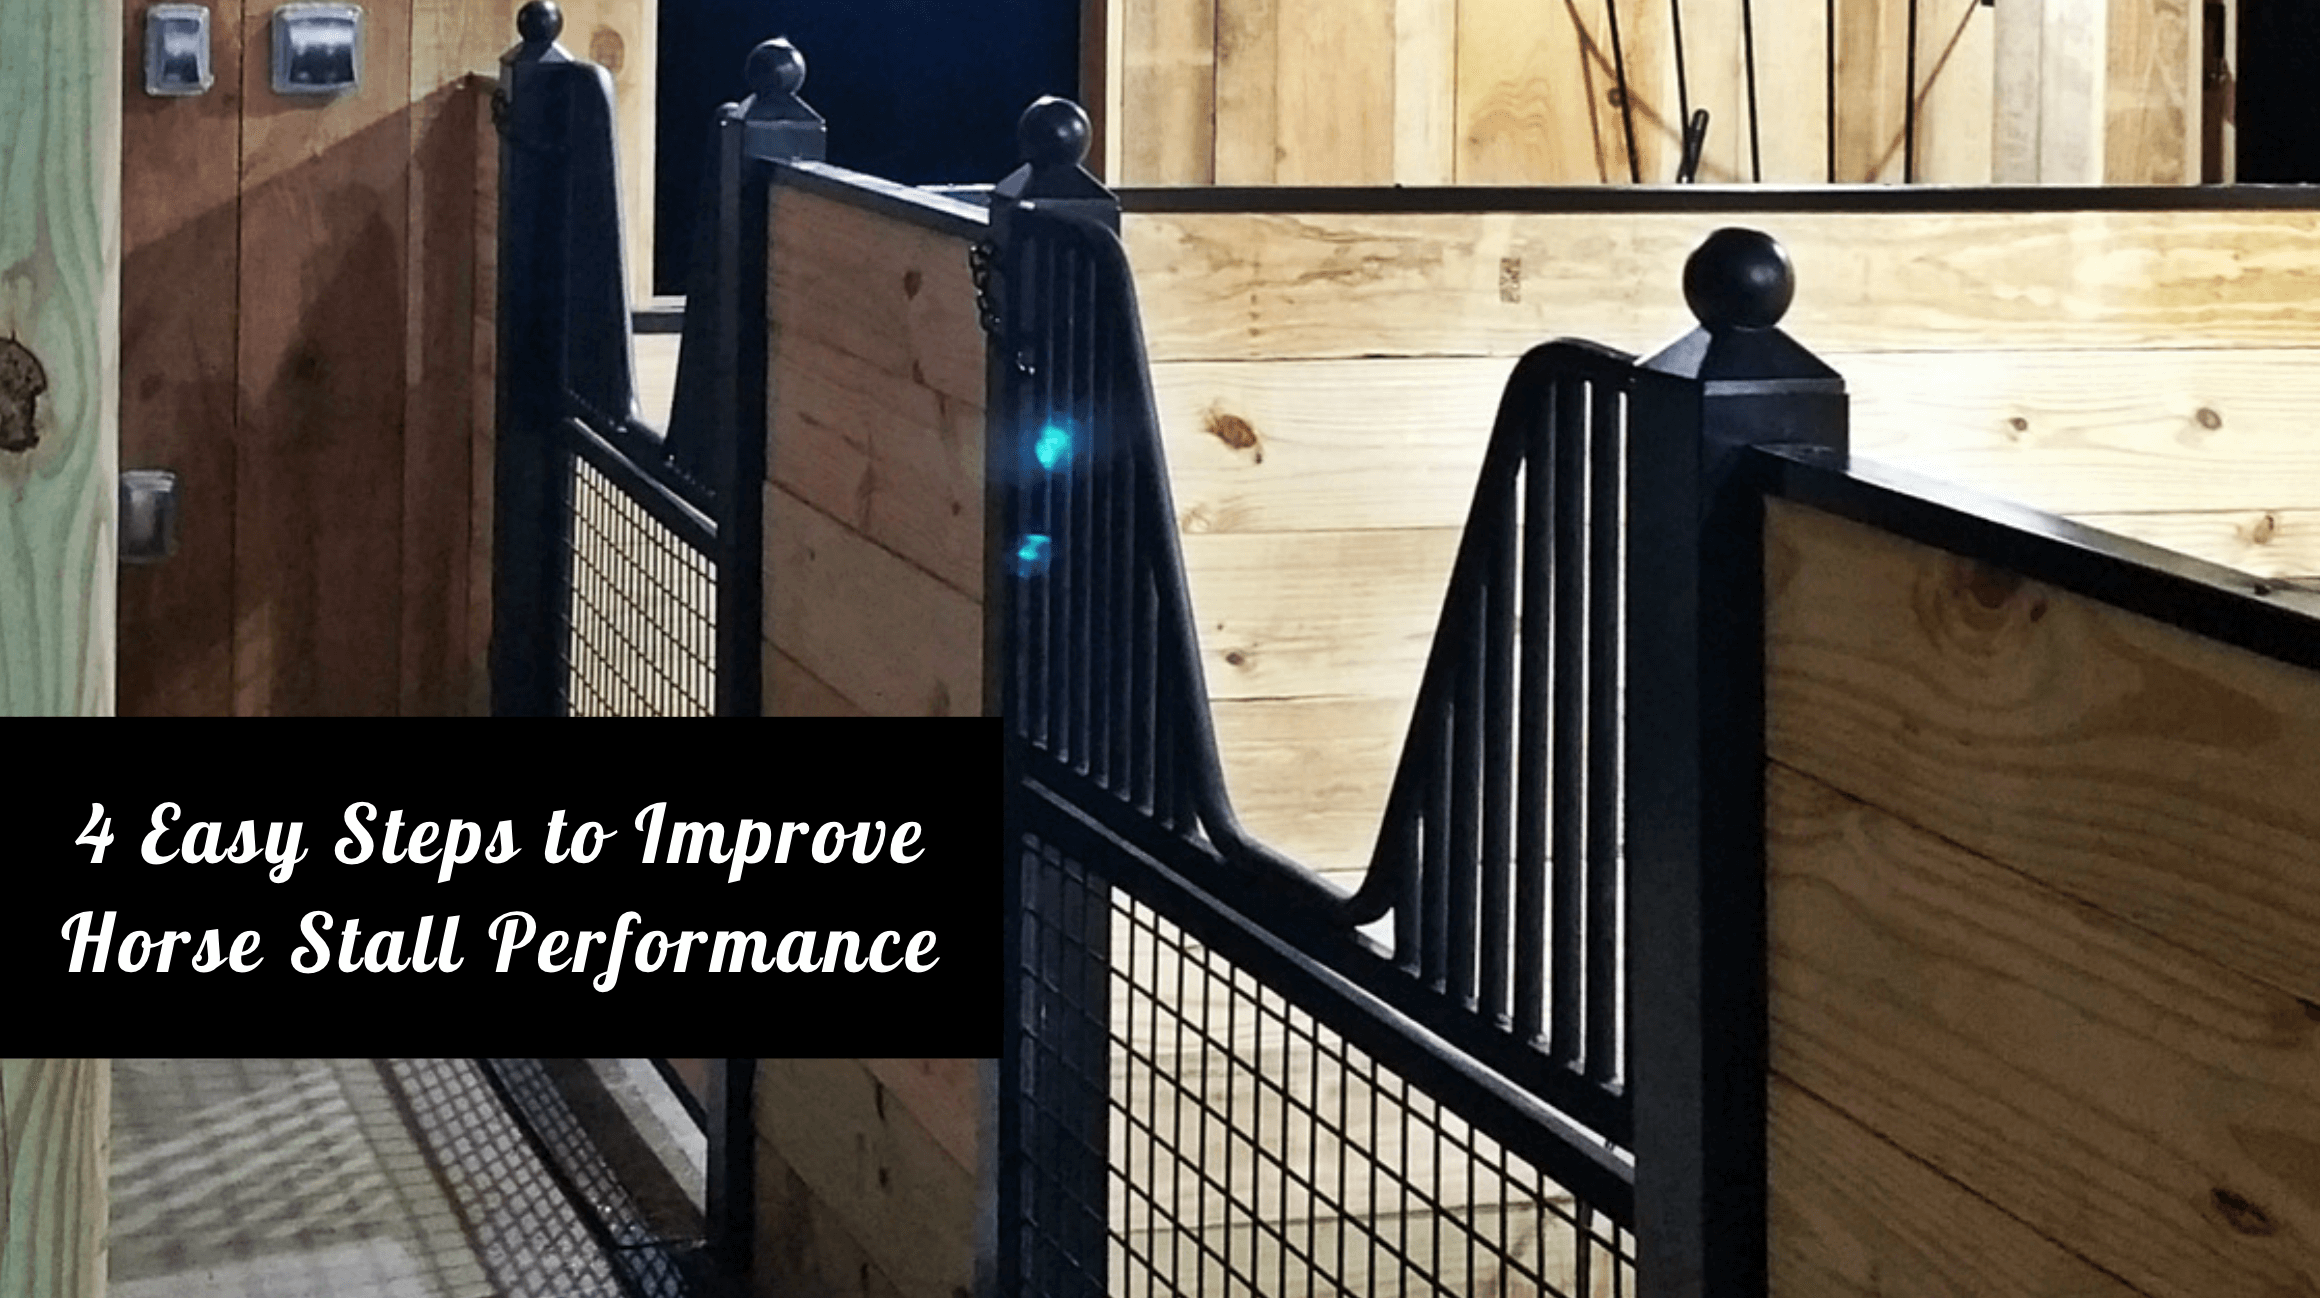 4 Easy Steps to Improve Horse Stall Performance